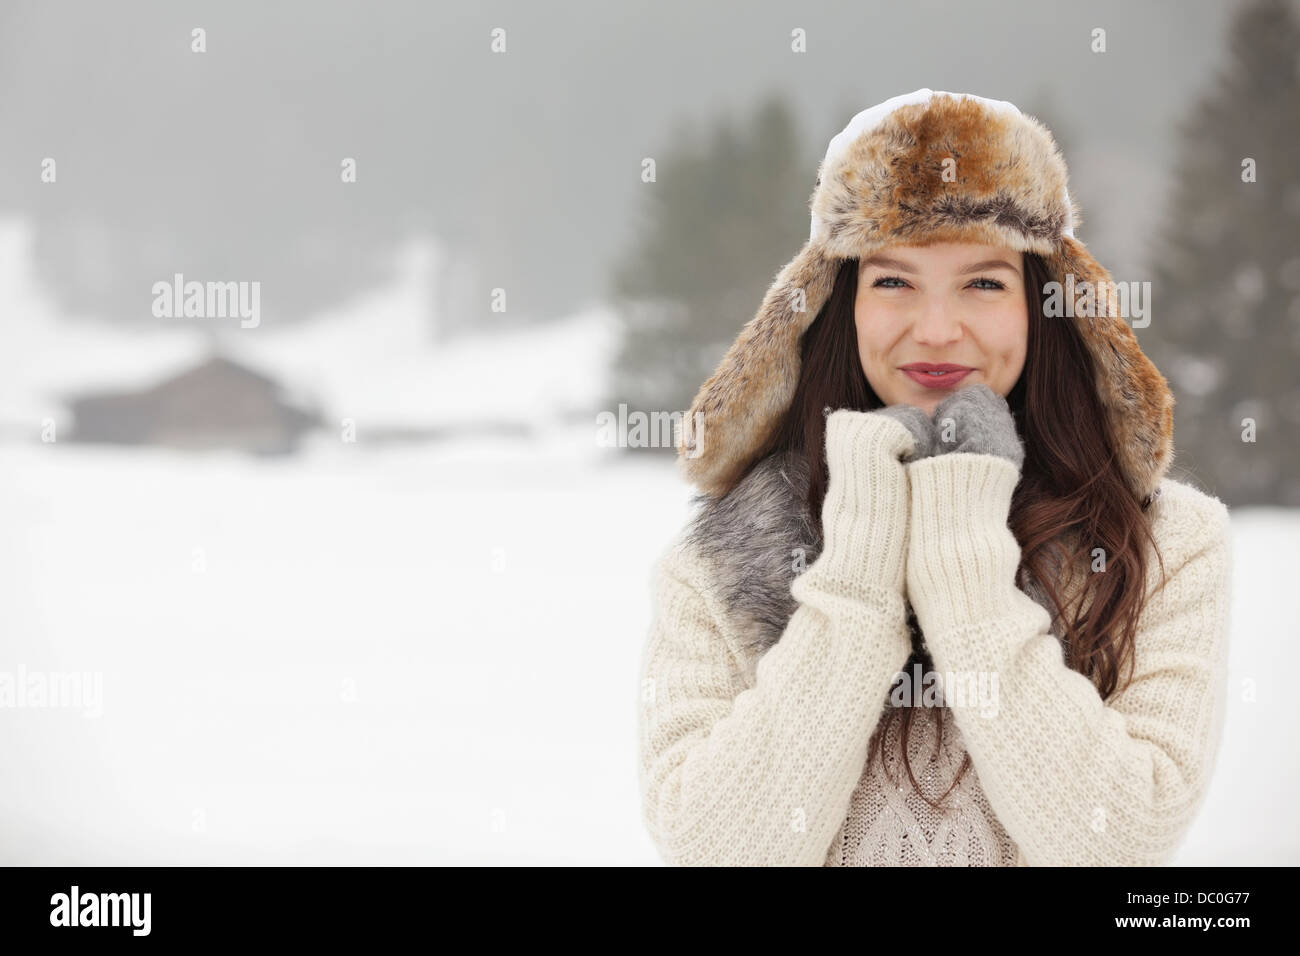 b449778c82251 Portrait of smiling woman wearing fur hat and gloves in snowy field - Stock  Image